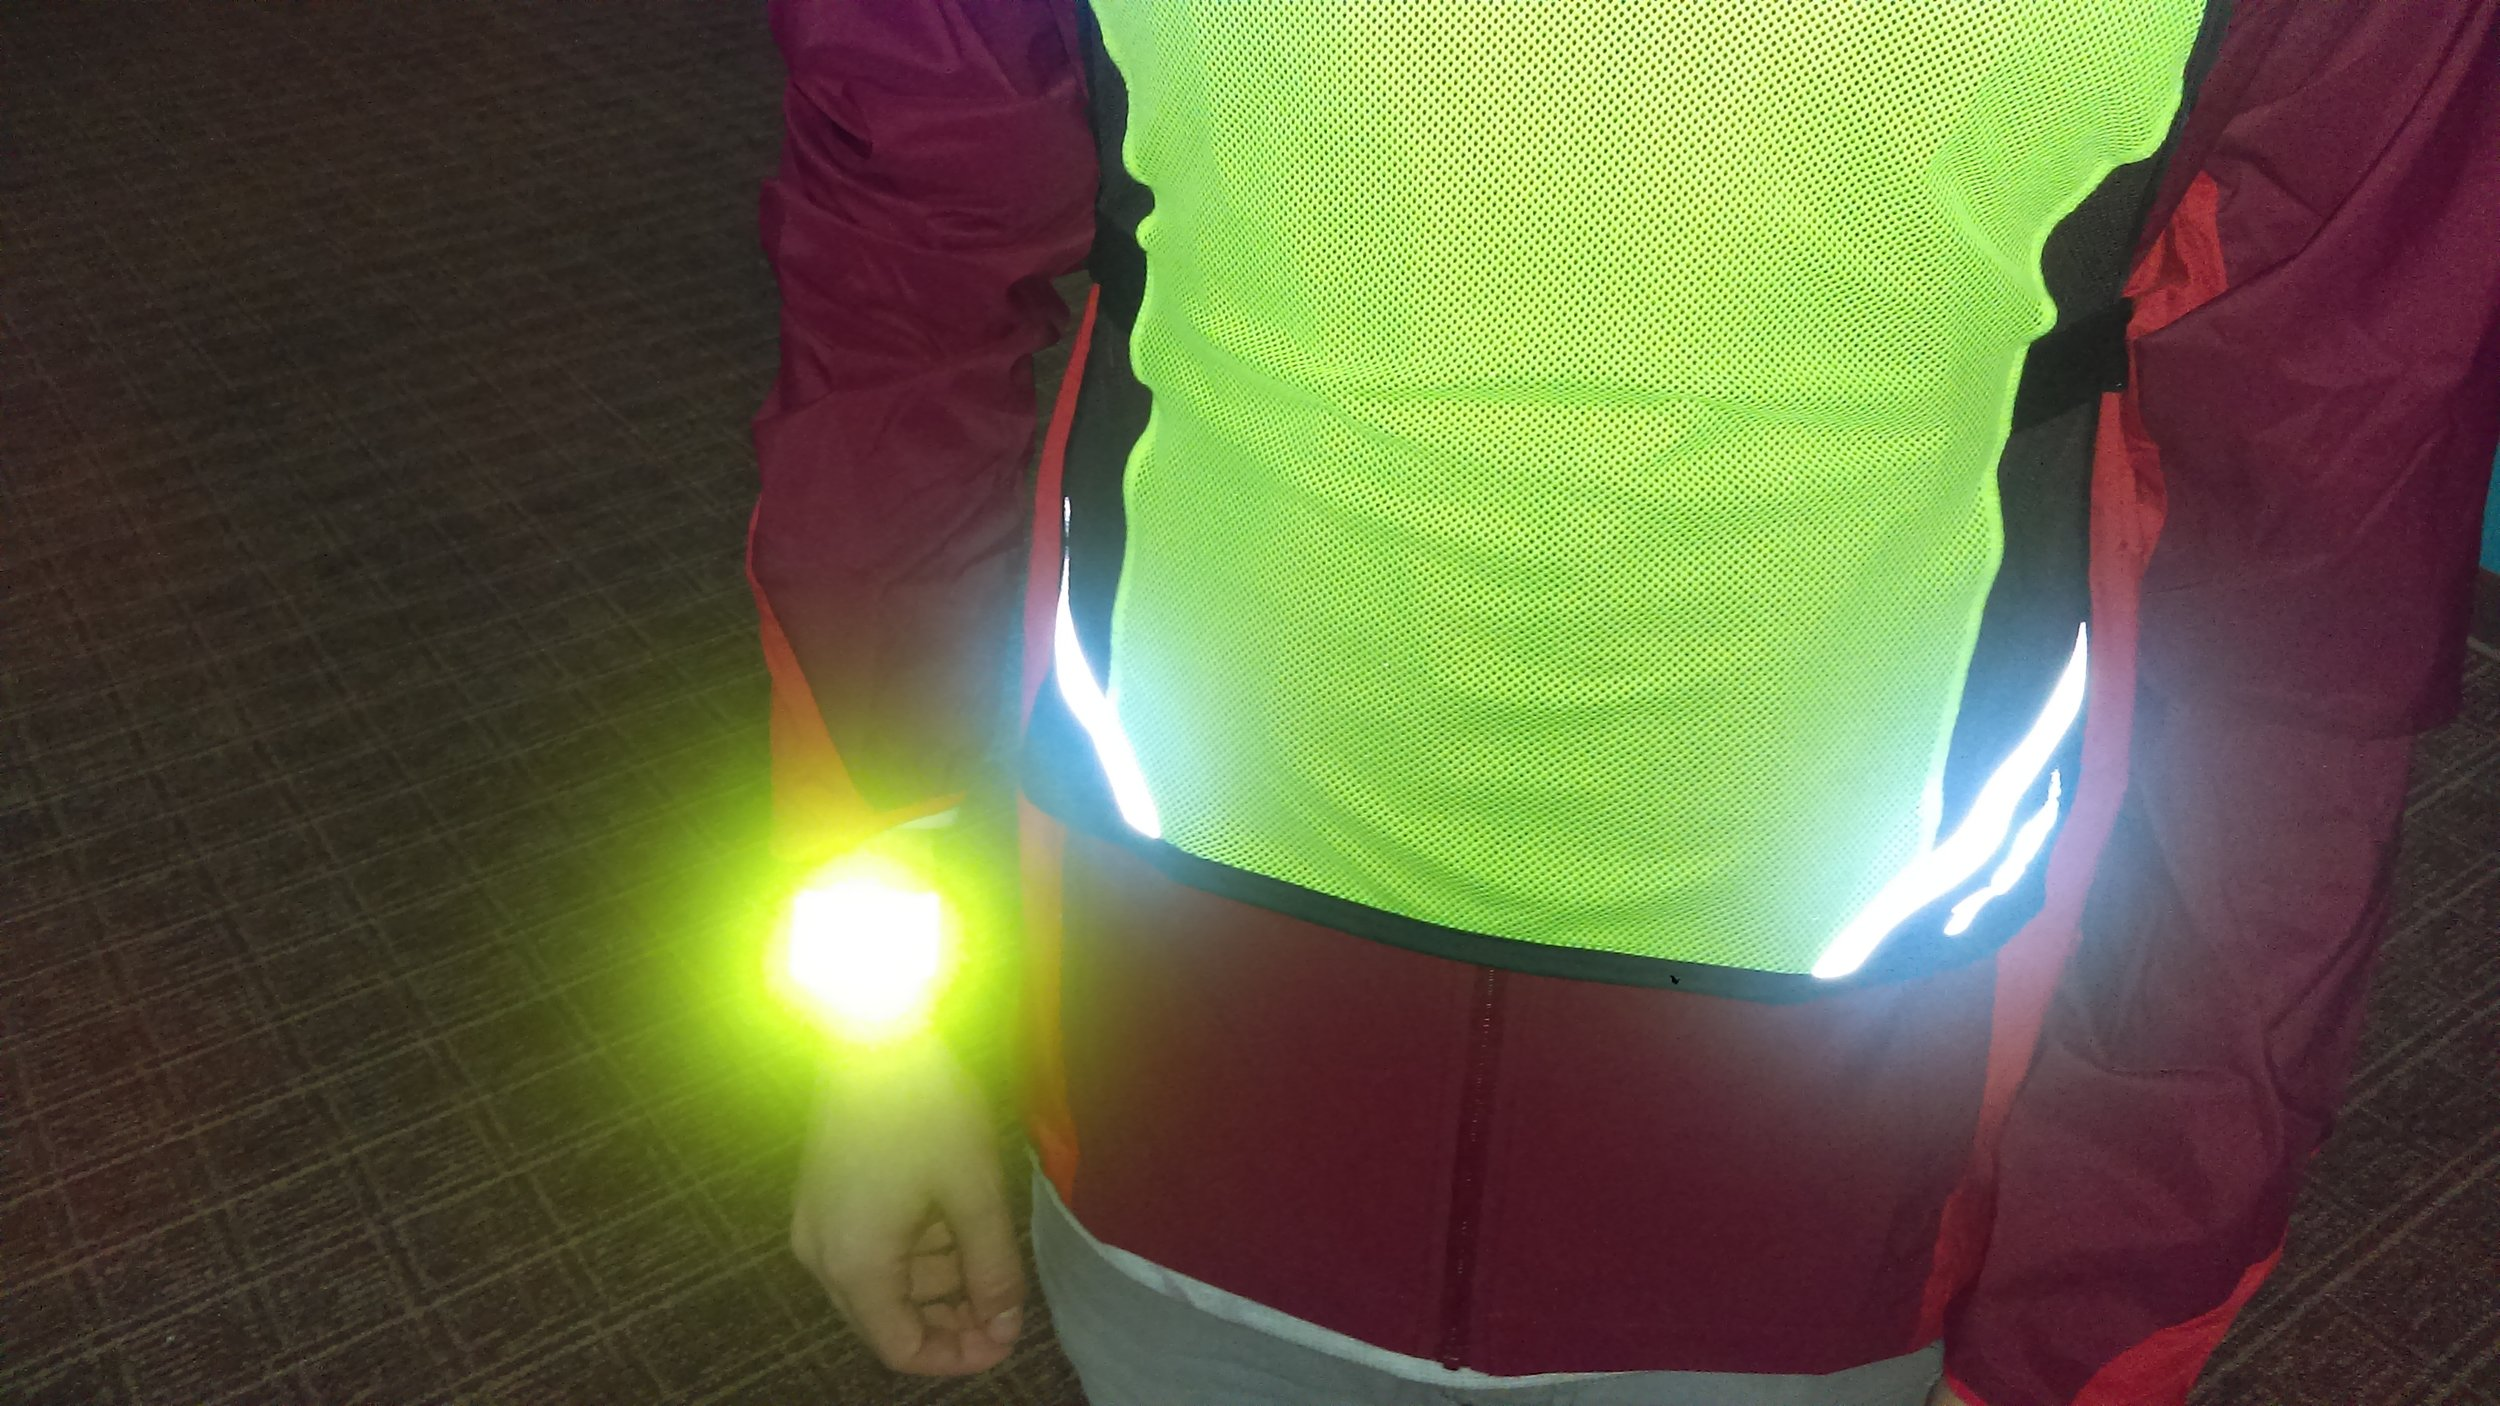 Here, Jason models our  reflective slap-on bracelet   which is both easy to strap onto a wrist (or ankle) and also very visible! Running with an arm bracelet provides short bursts of light that can break up a driver's vision and make it easier to be seen. The same thinking goes into blinking lights.